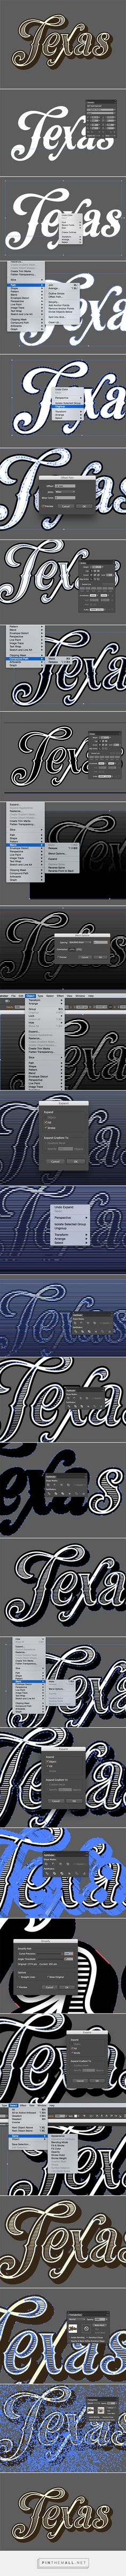 How To Create a Vintage Text Effect in Illustrator - created via http://pinthemall.net